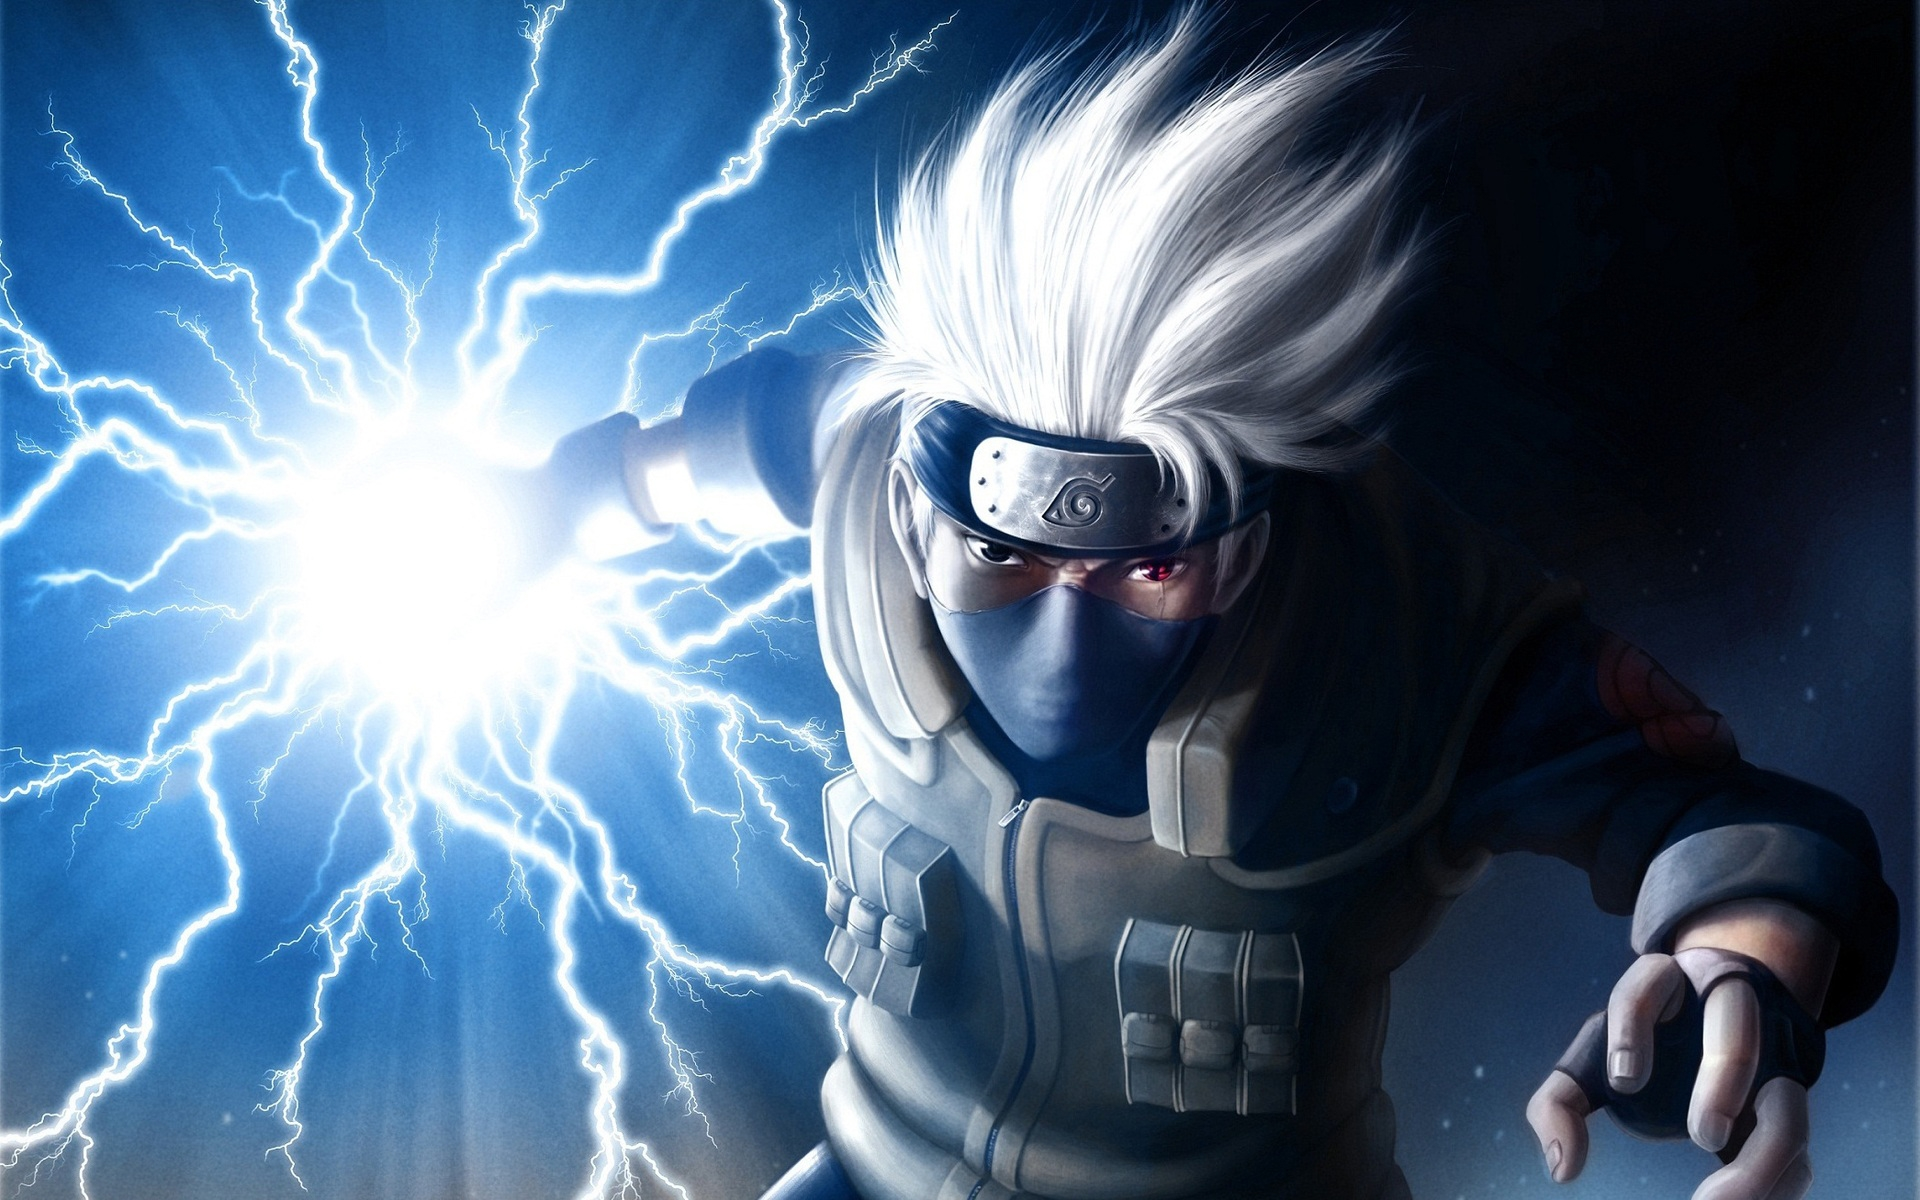 Naruto Shipuden Wallpapers Anime HD Wallpapers Desktop 1920x1200